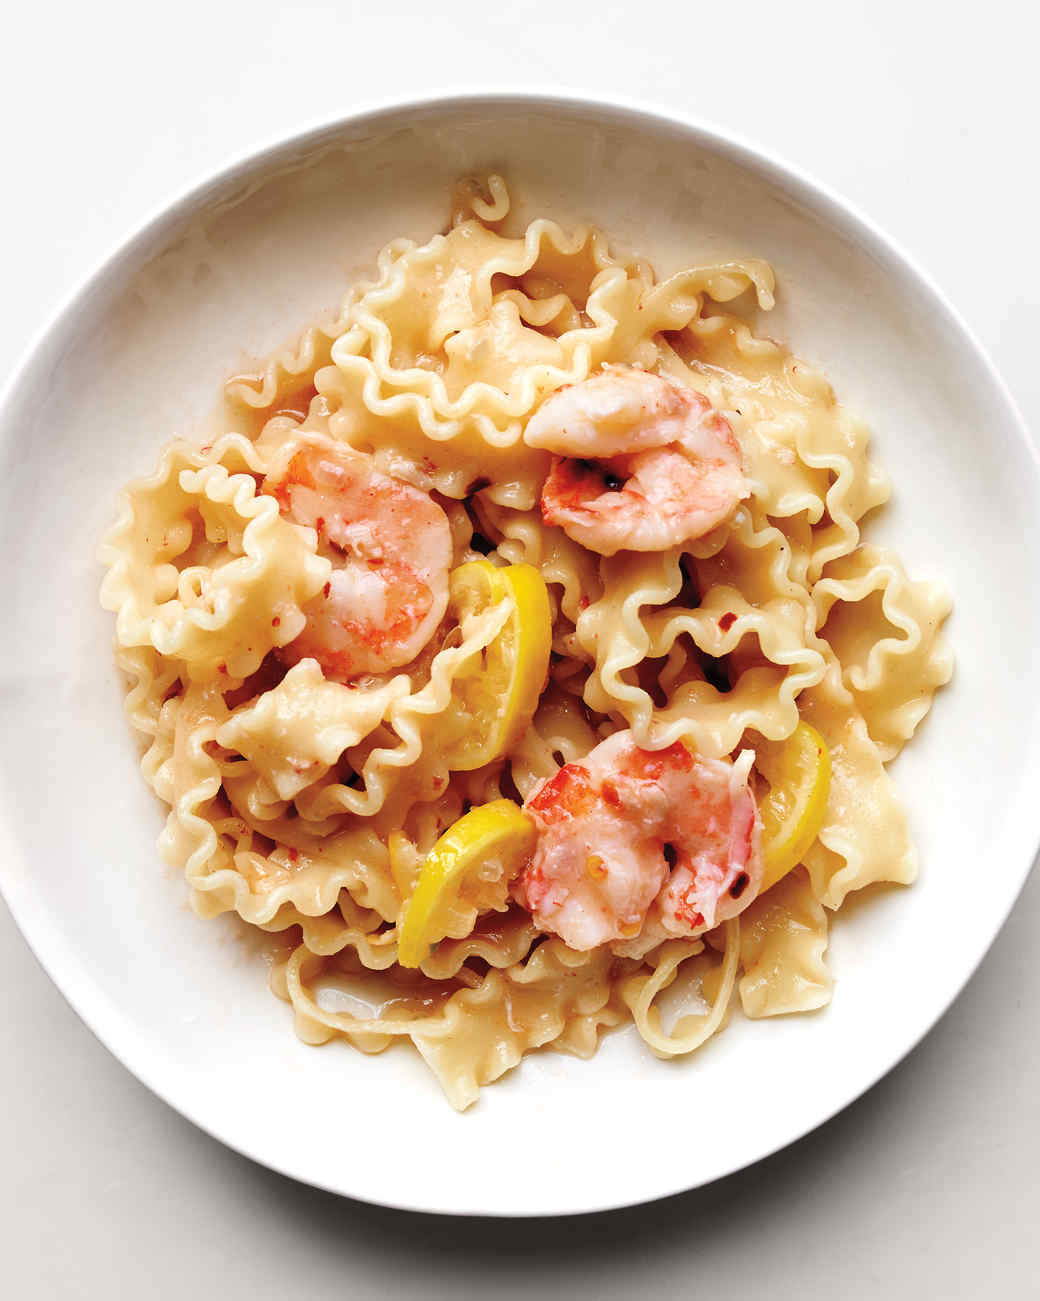 pasta-papardelle-shrimp-0184-d111697.jpg